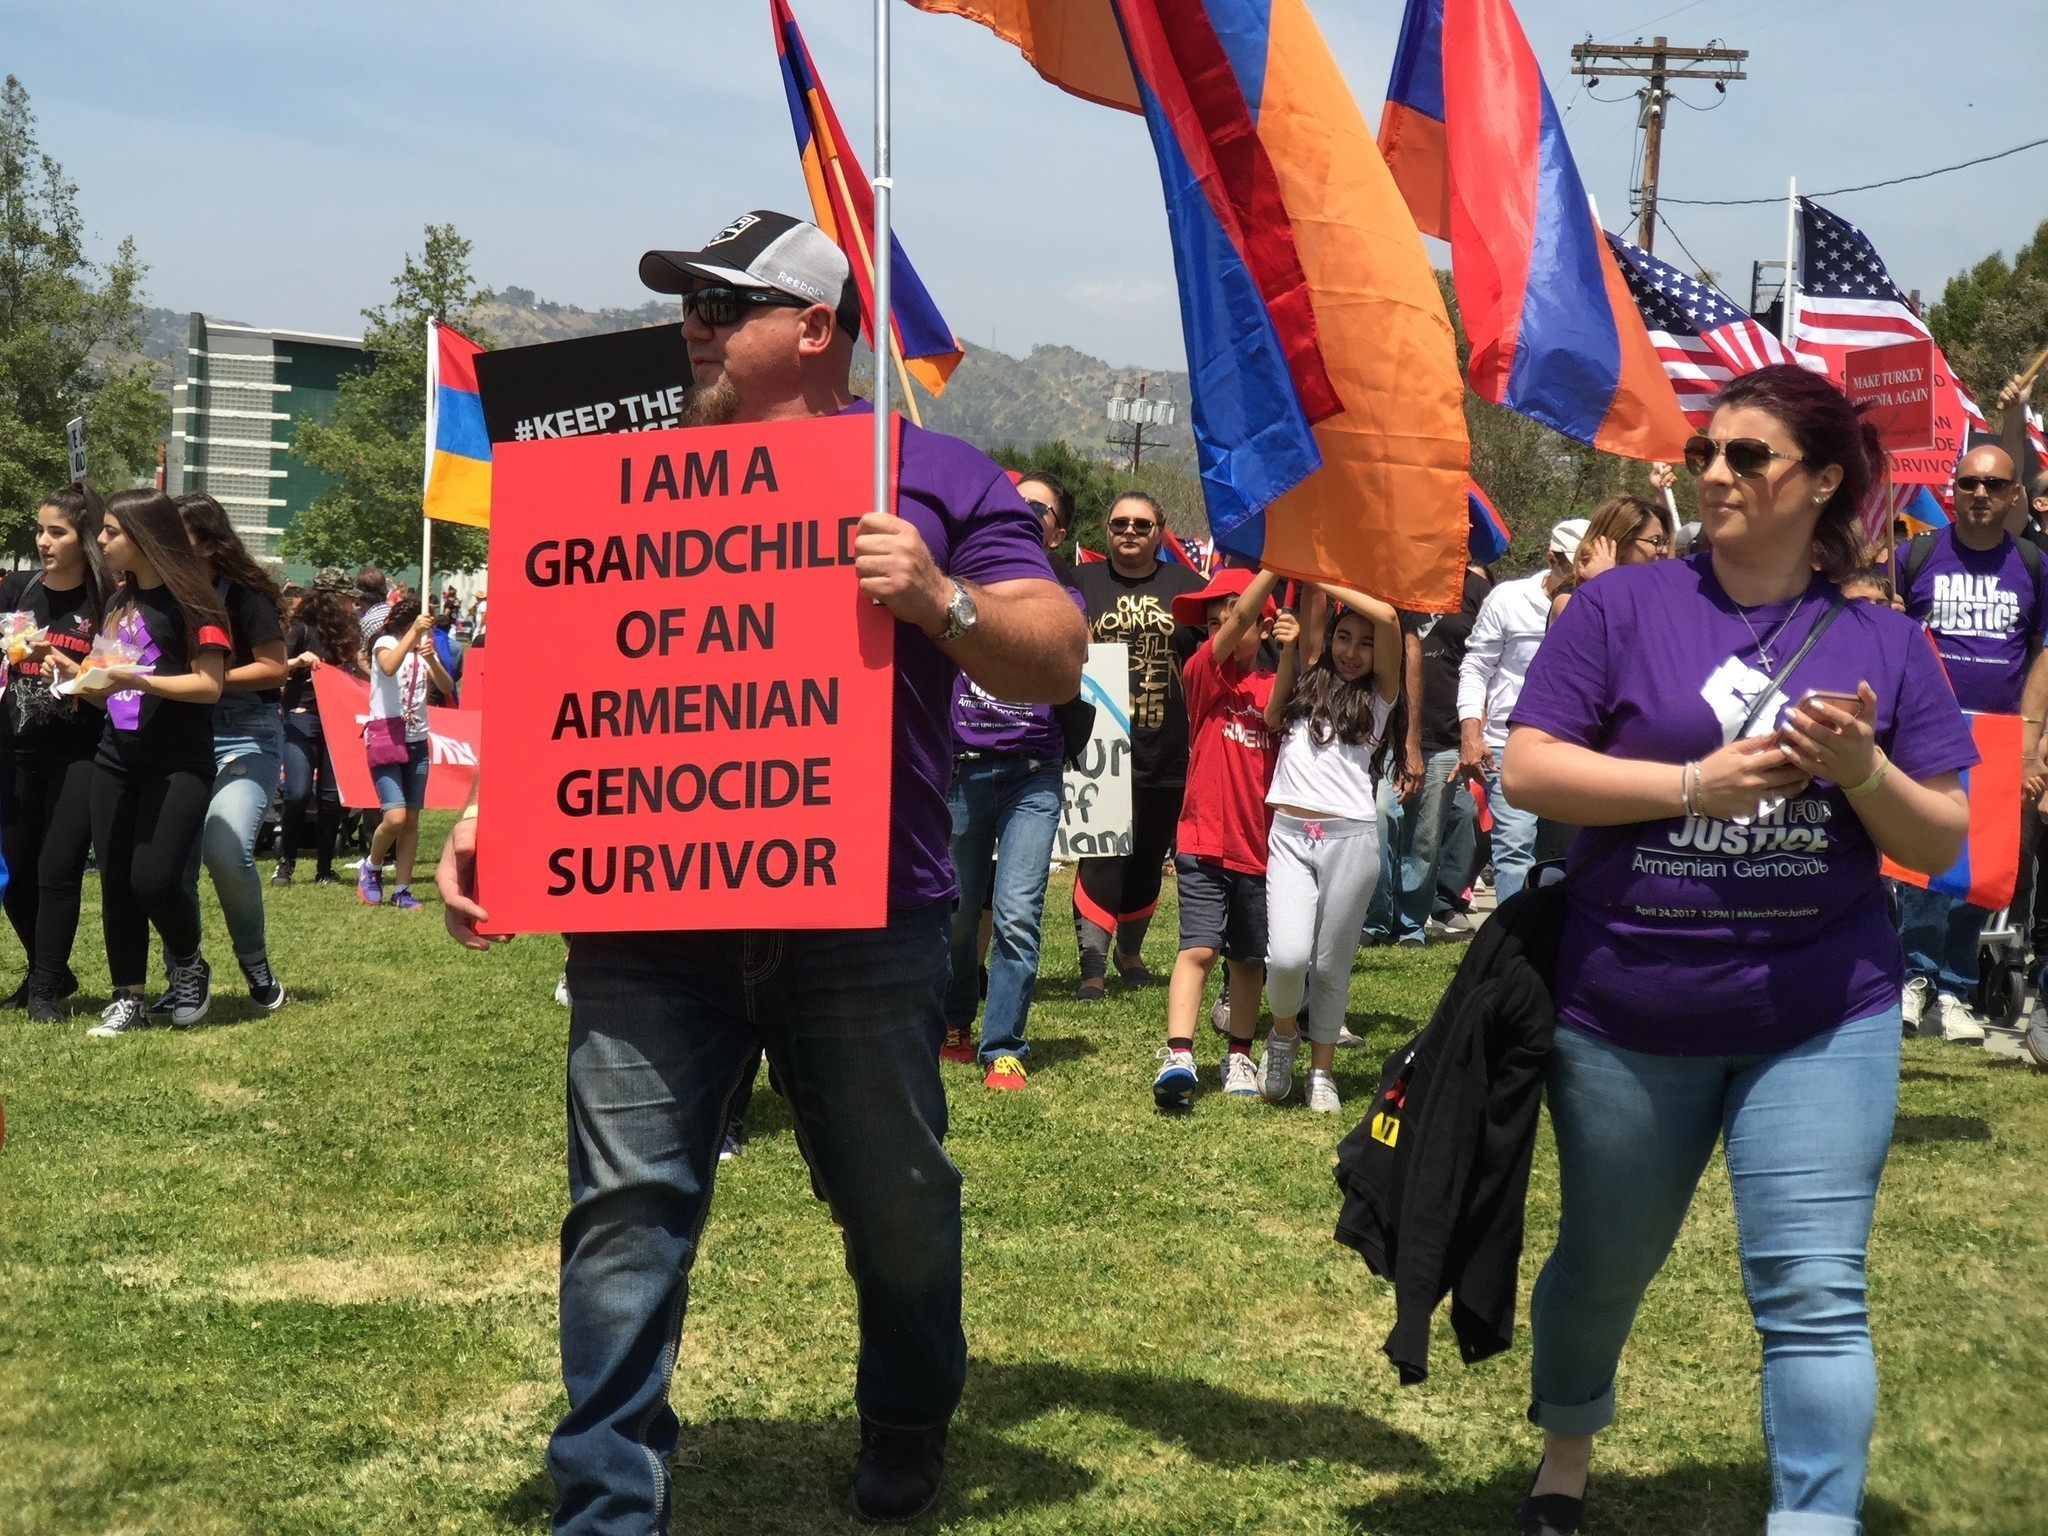 an analysis of armenian genocide by turks Turkey, armenians battle over genocide 100 years later armenians from around the globe are in istanbul to commemorate the start of what's been called the.